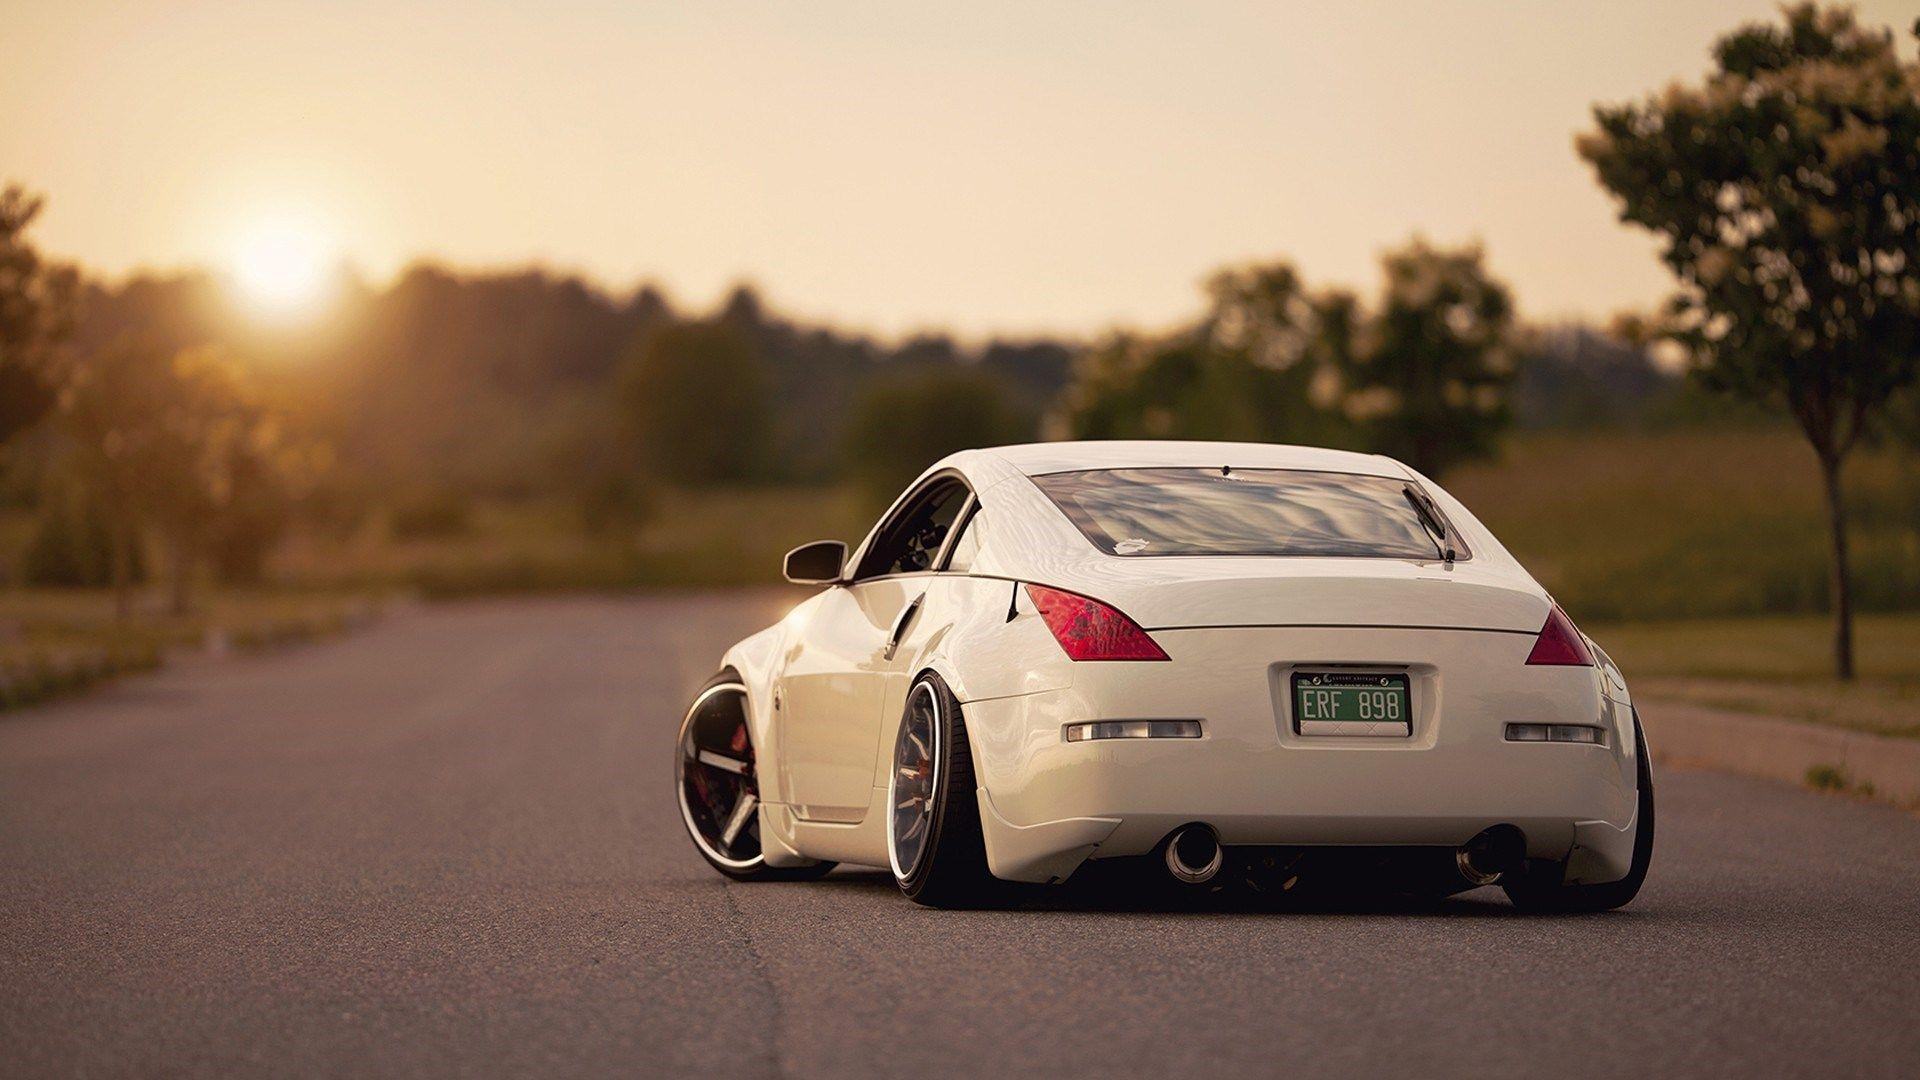 Nissan 350z Tuning Back Photo Sunshine Field HD Wallpaper - ZoomWalls